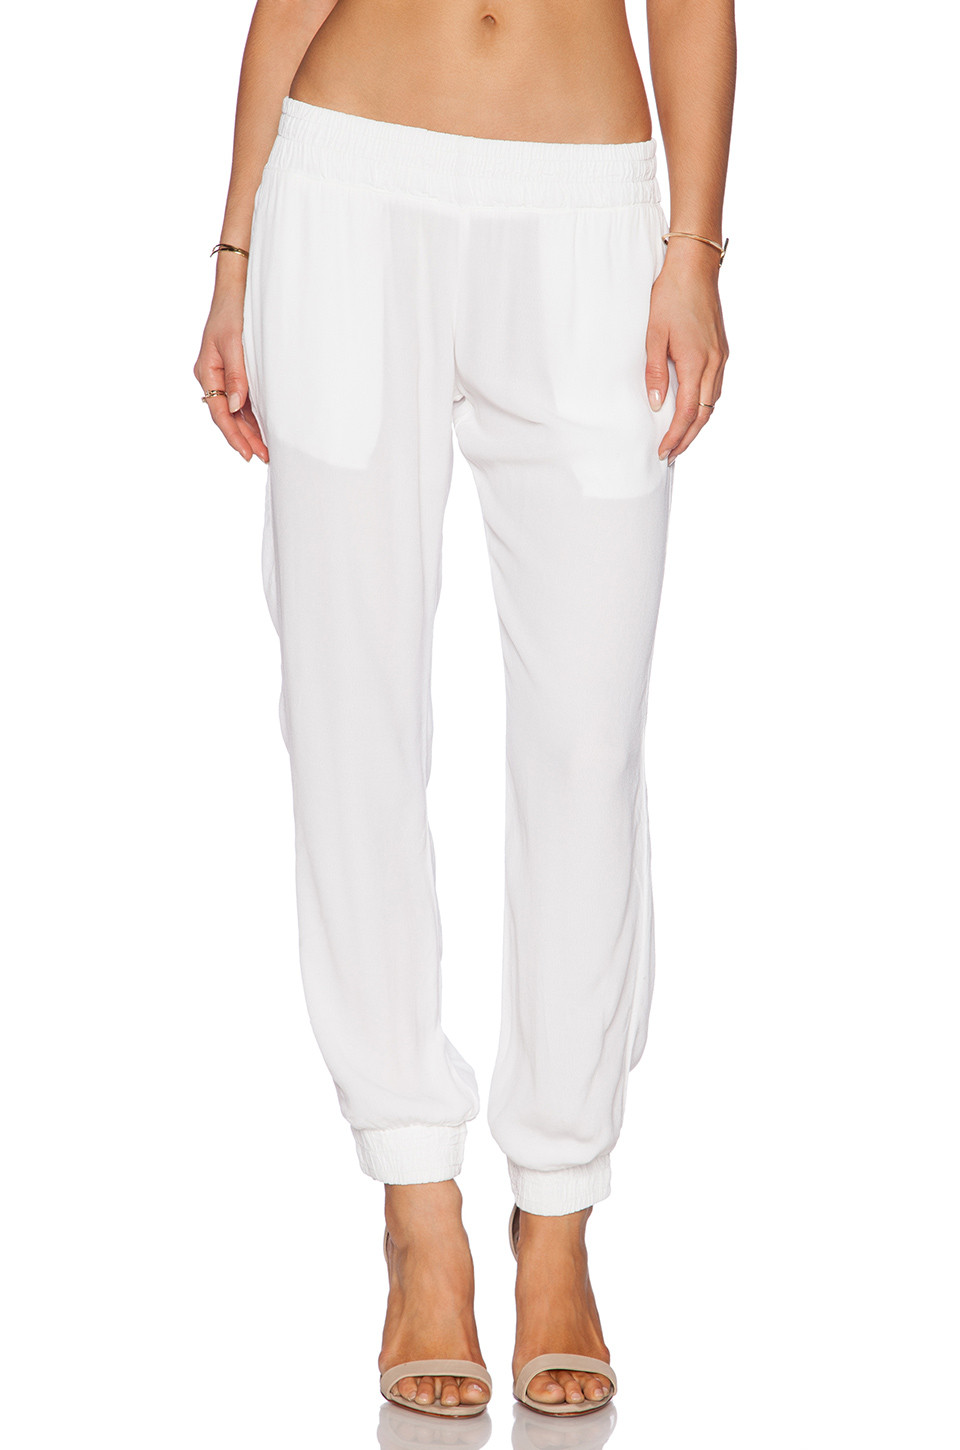 Monrow skinny sweatpant at Revolve clothing for $73